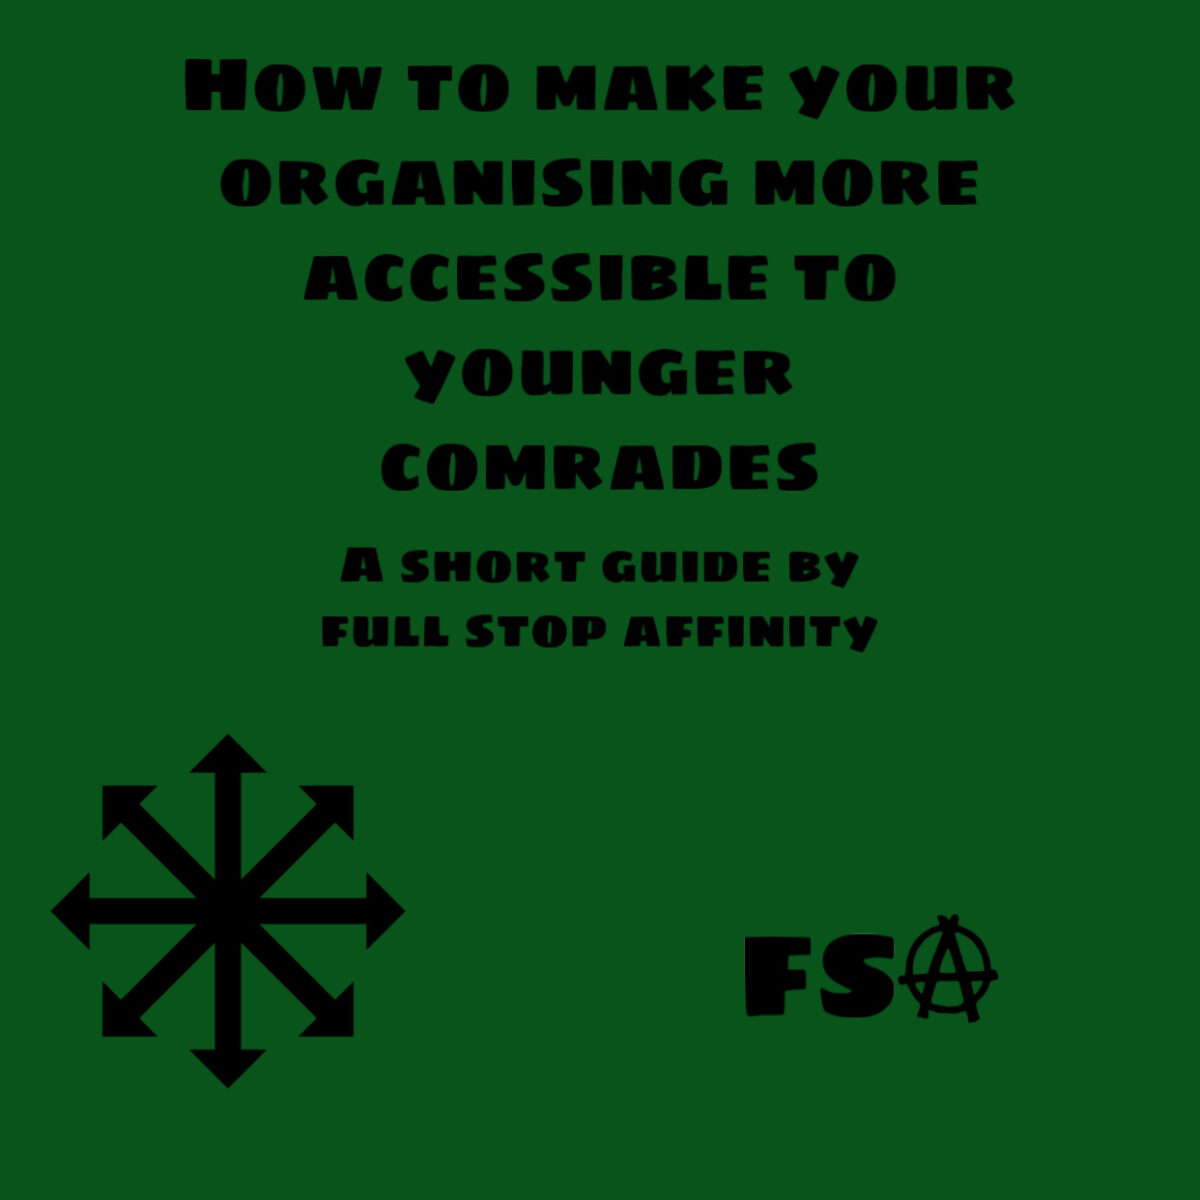 How to Make Your Activism More Accessible to Younger Comrades: A Guide by FSA